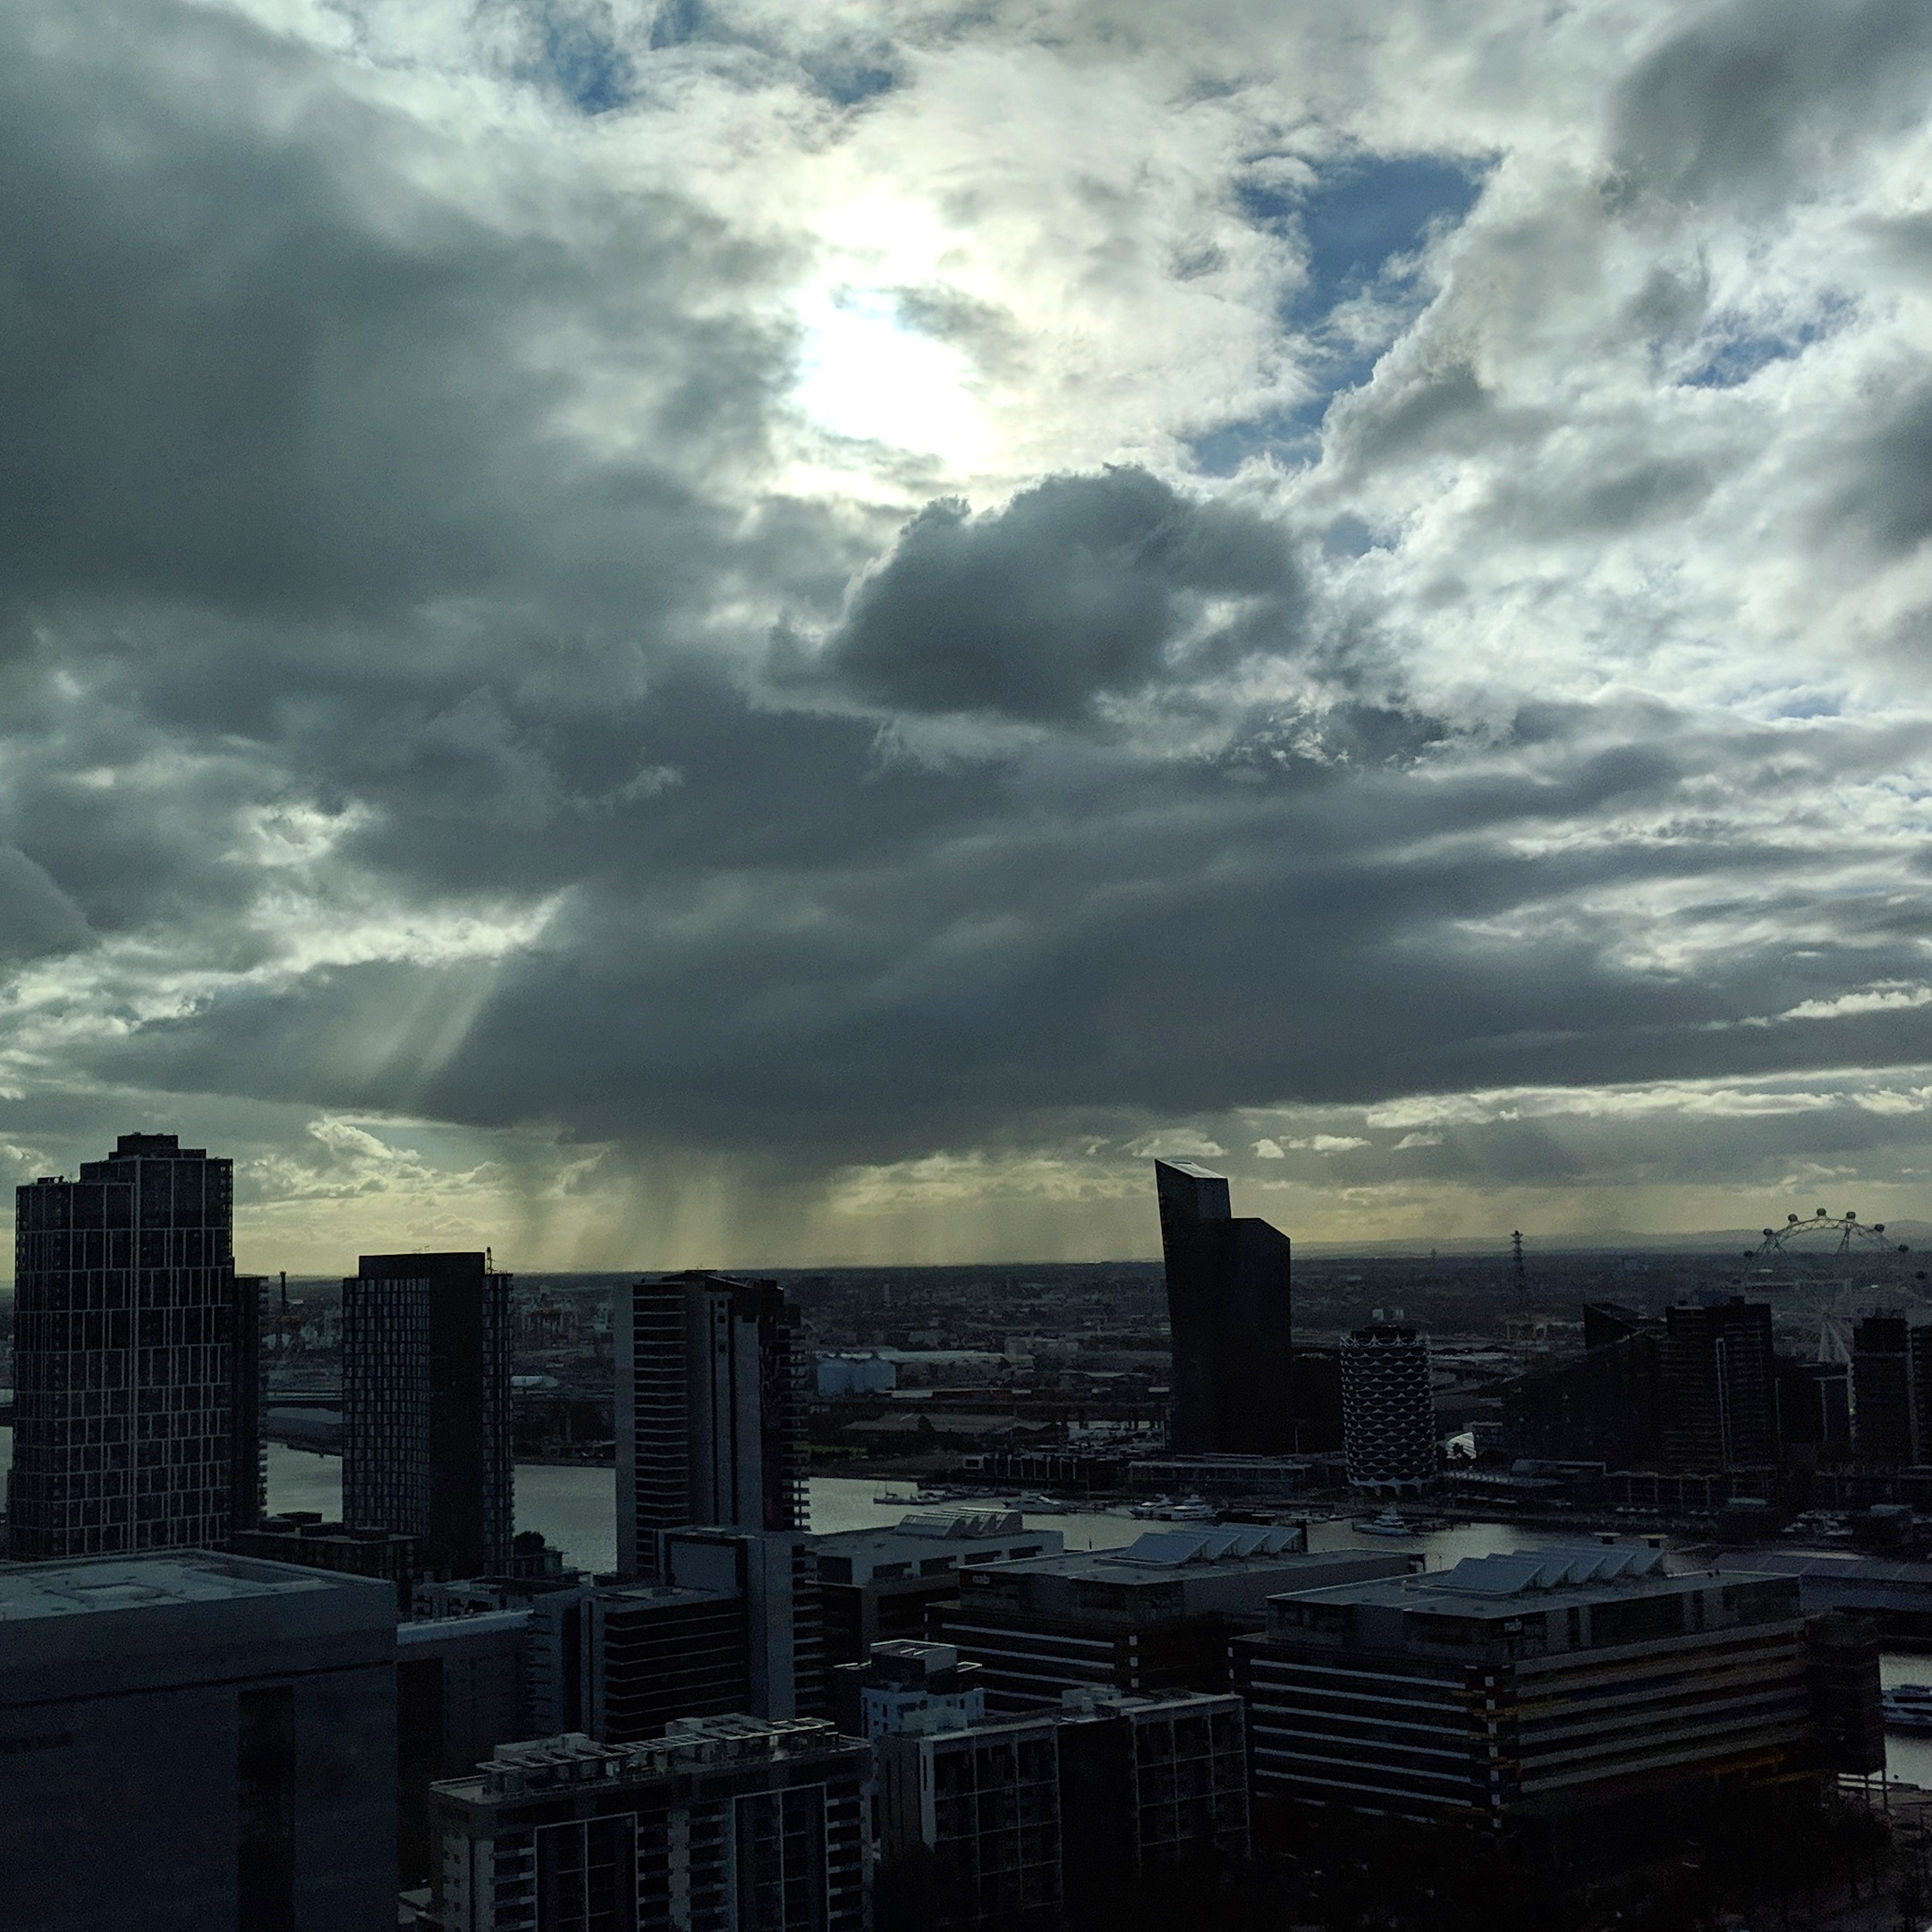 Looking towards Sunshine from the 29th floor of a building in Docklands.